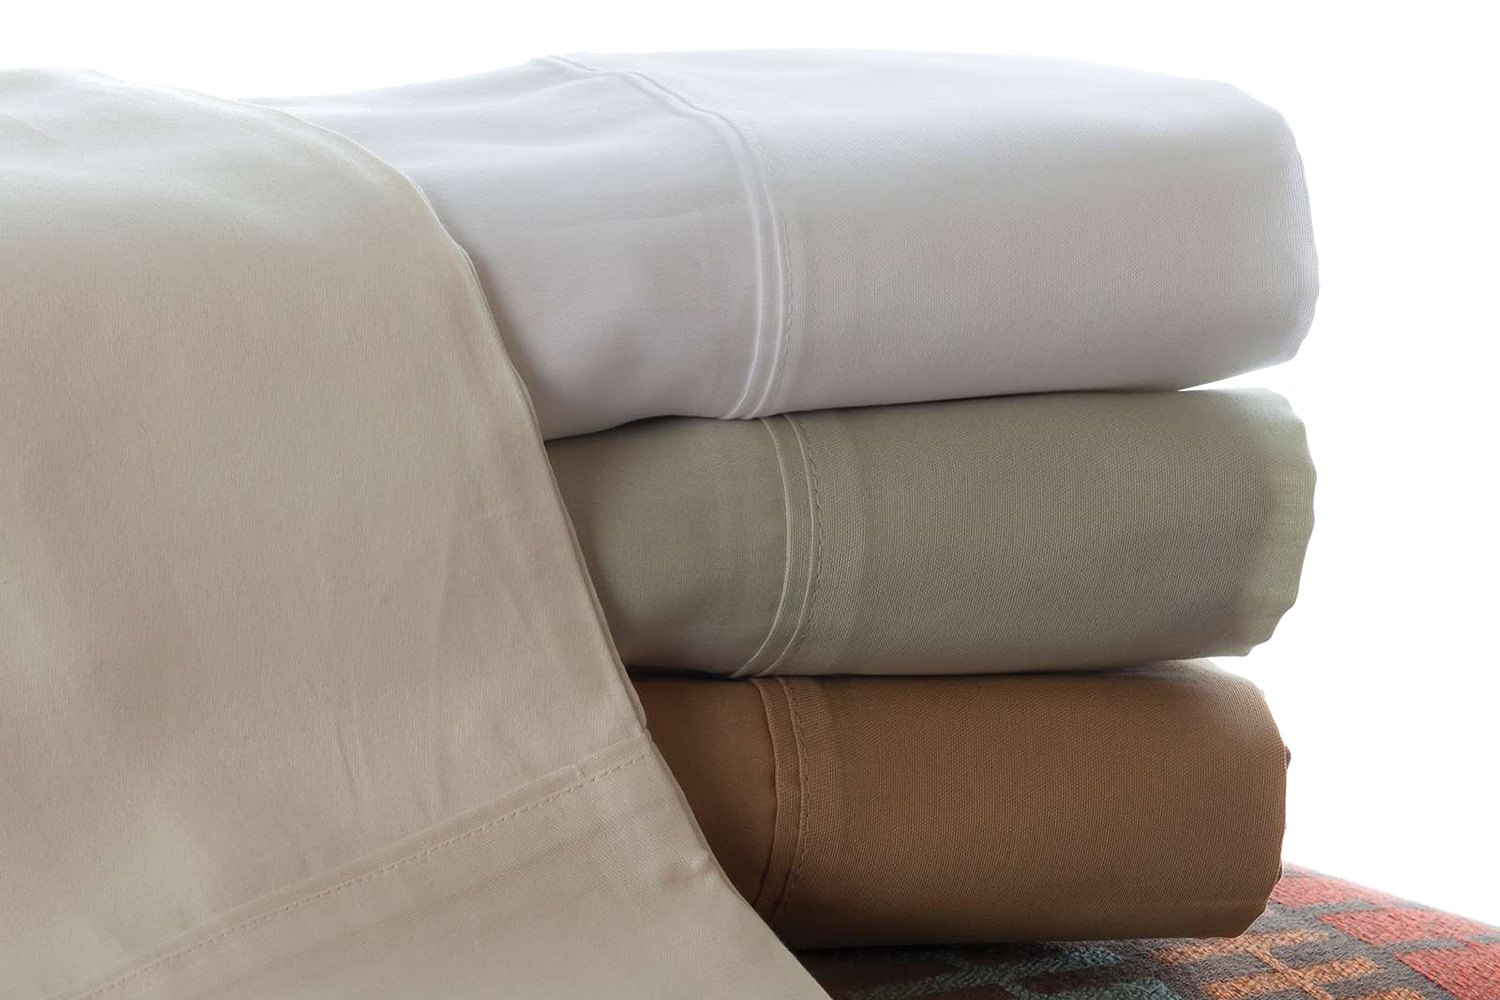 Denver Mattress 343503 White Sateen Short Queen Sheet Set